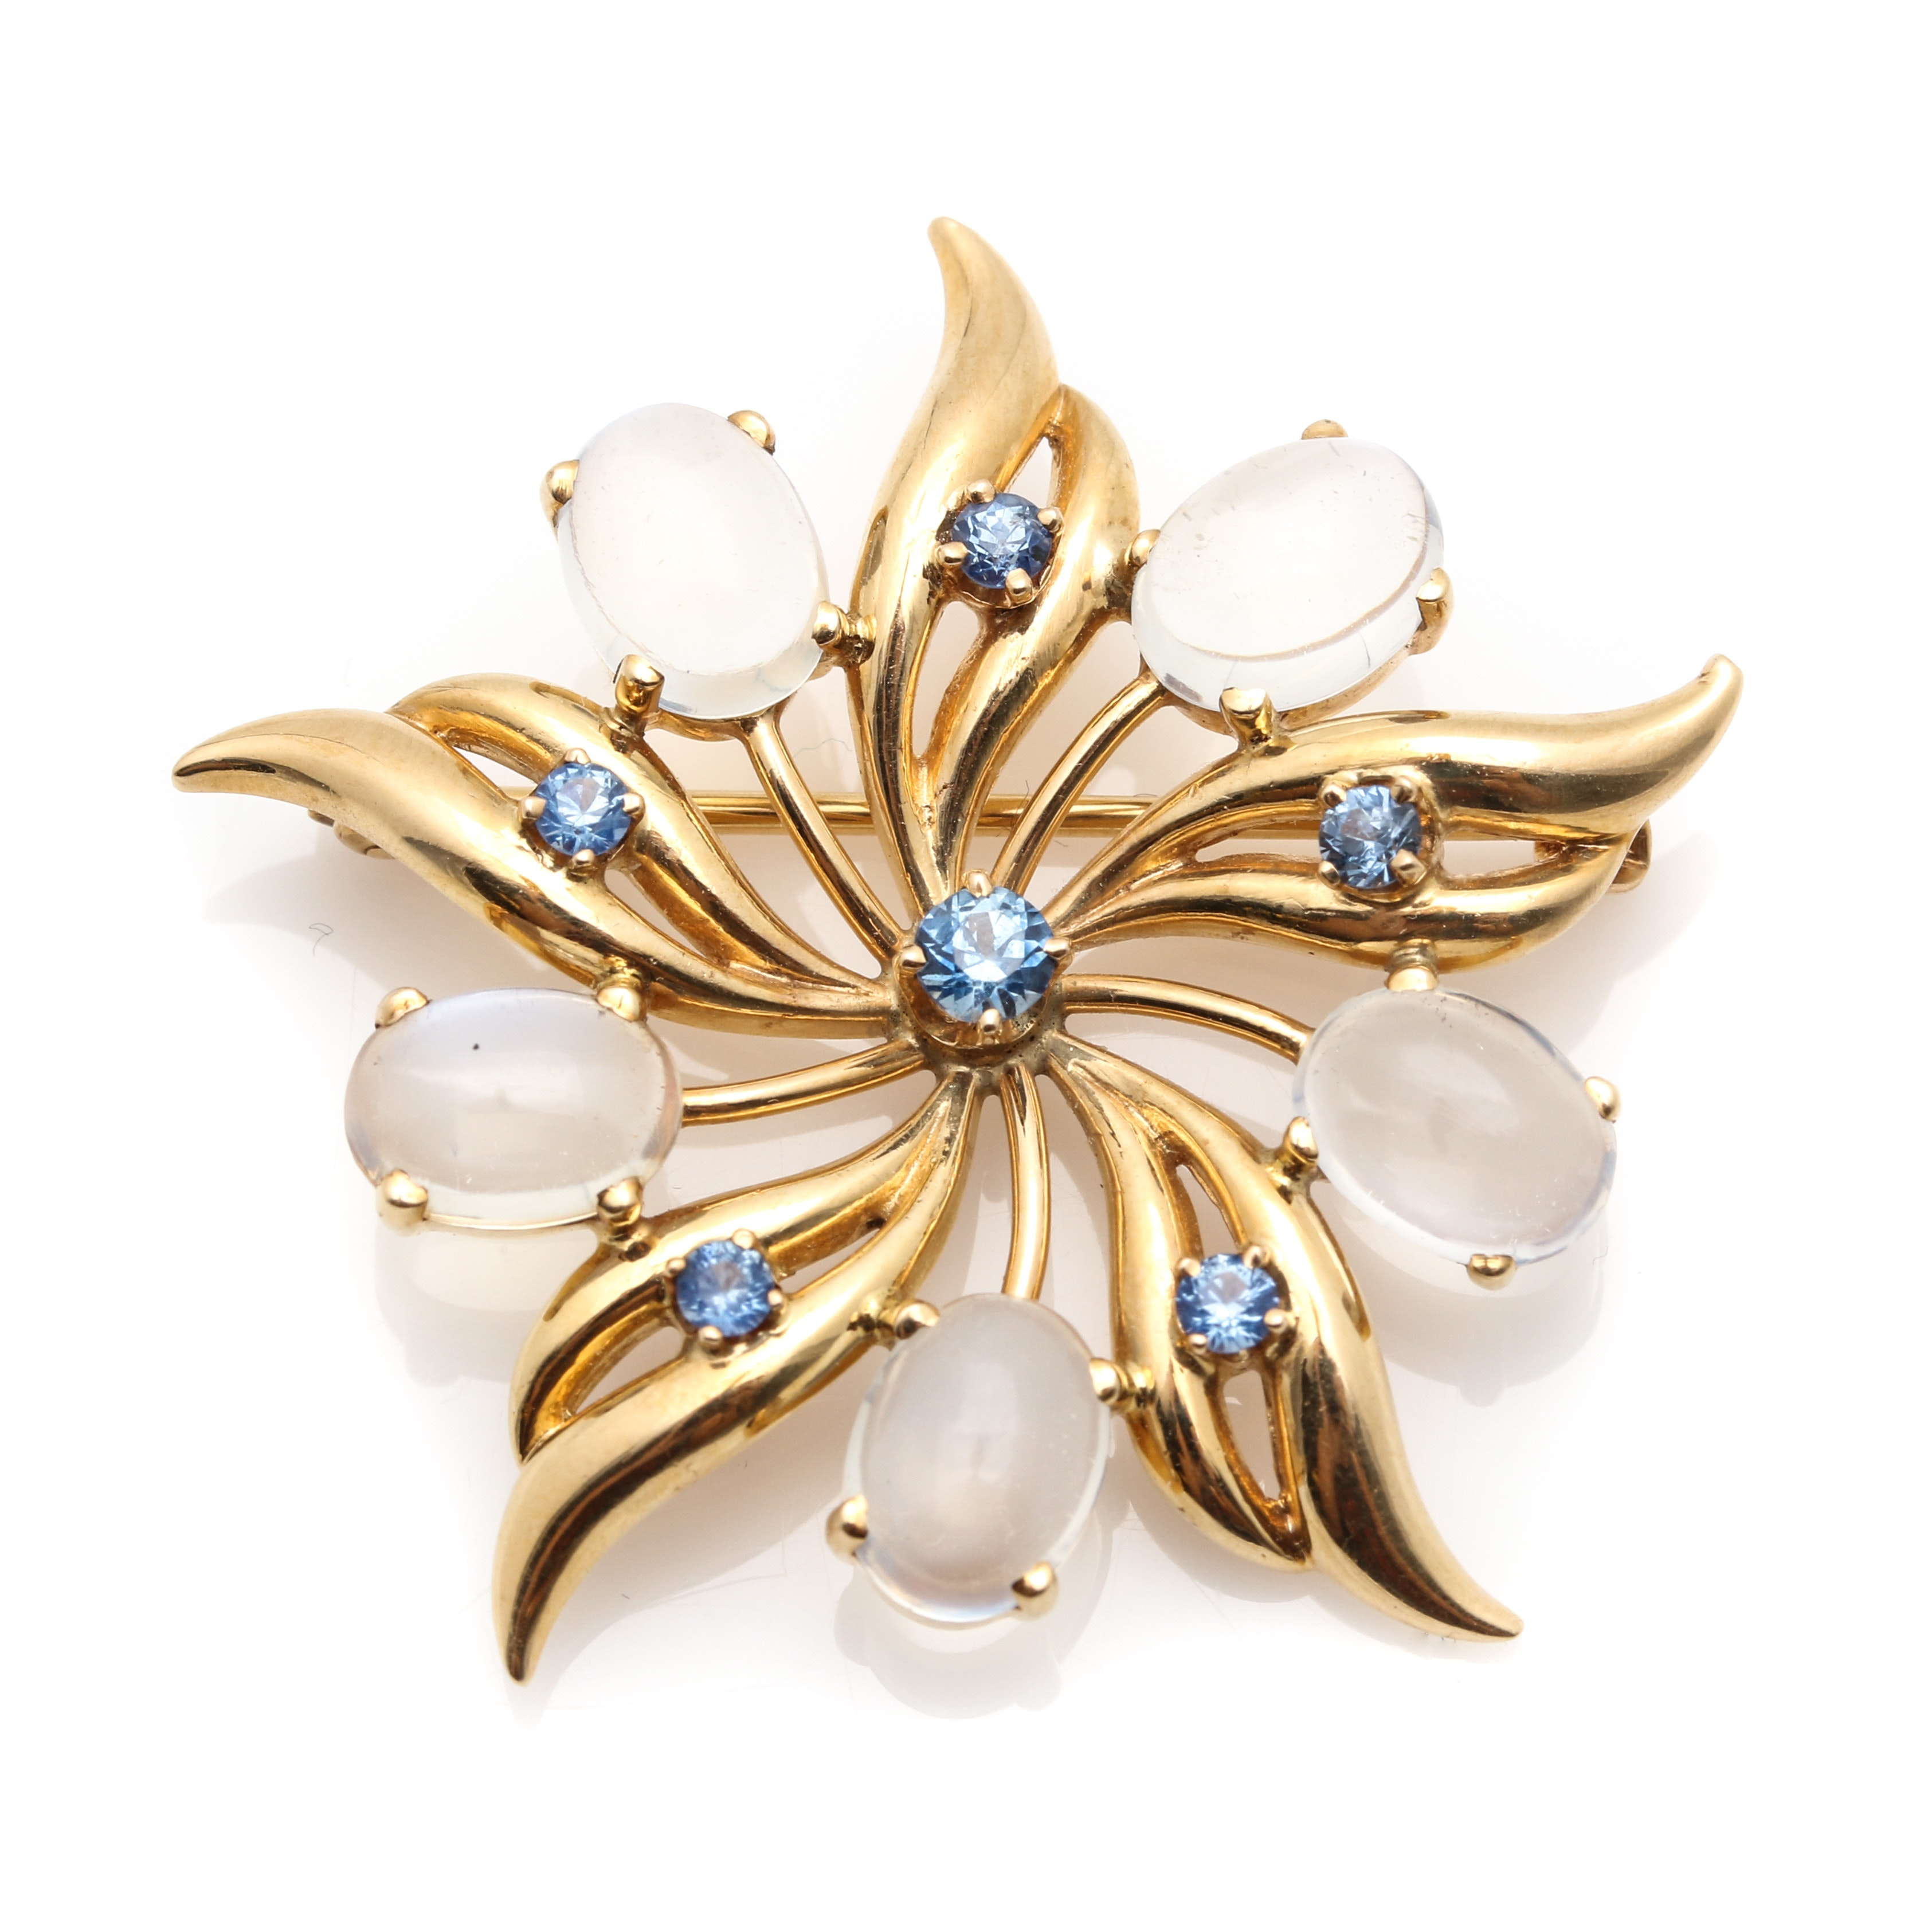 14K Yellow Gold Sapphire and Moonstone Brooch